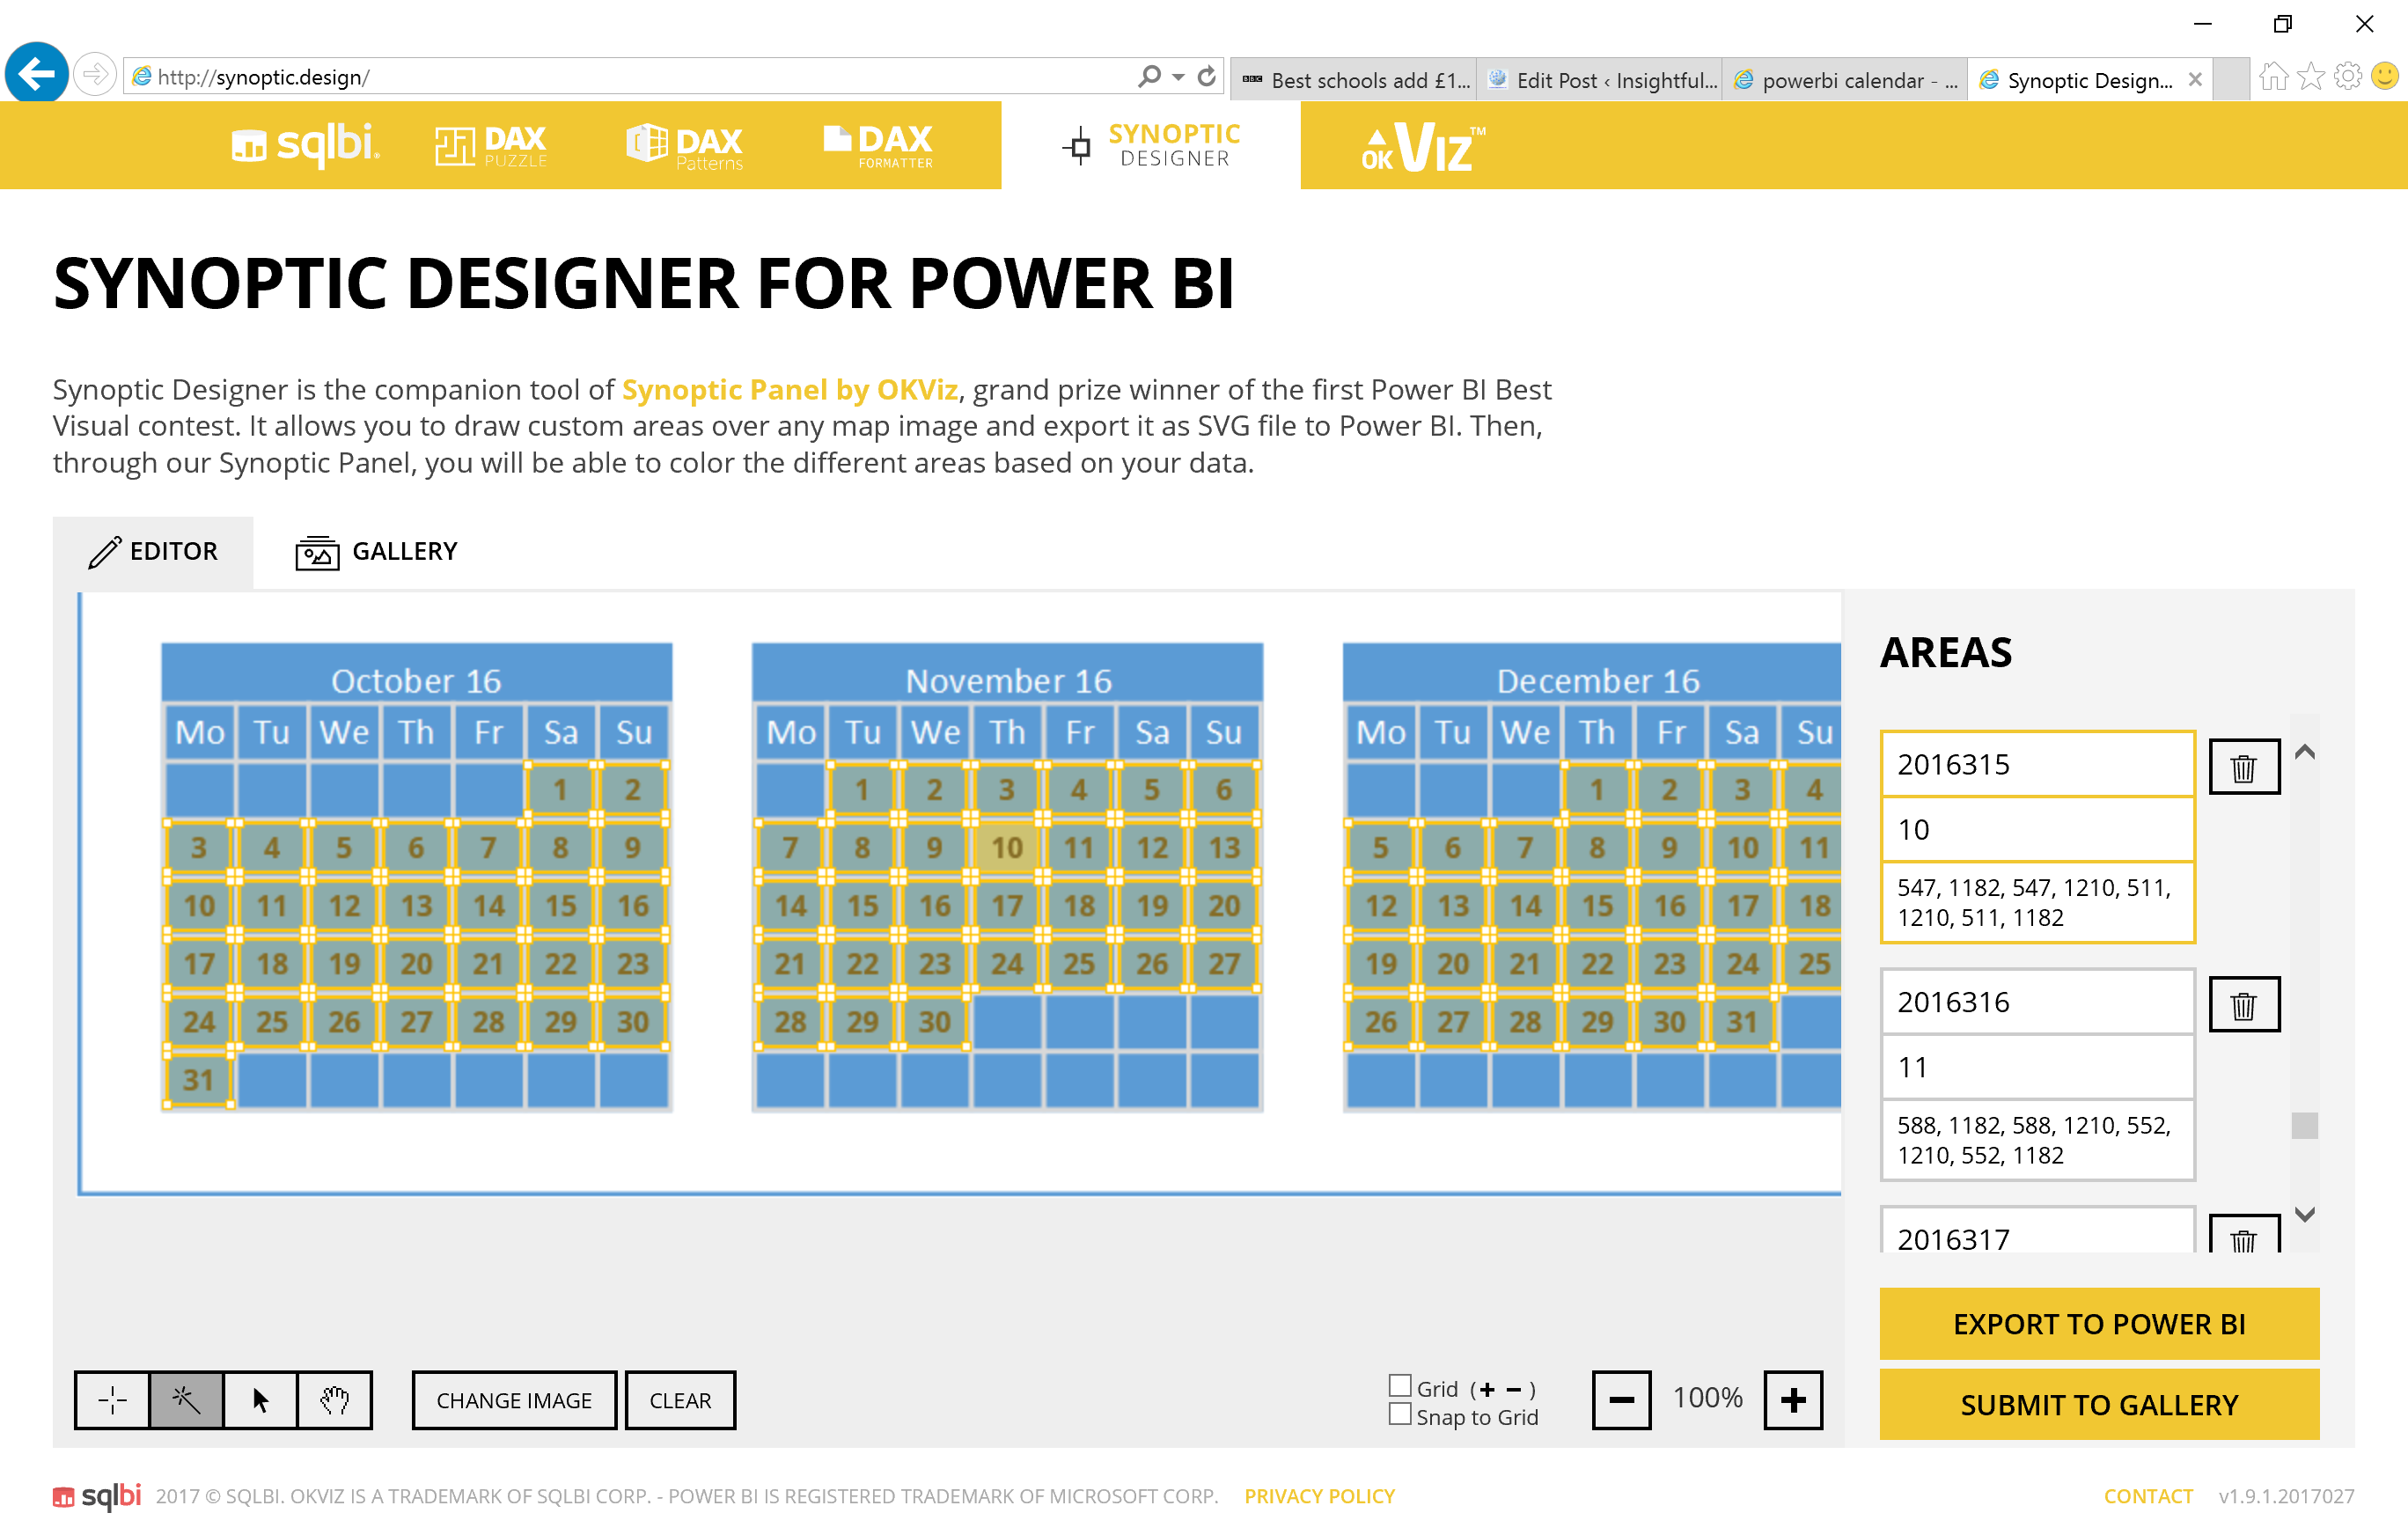 Power-BI-Calendar-Image-6